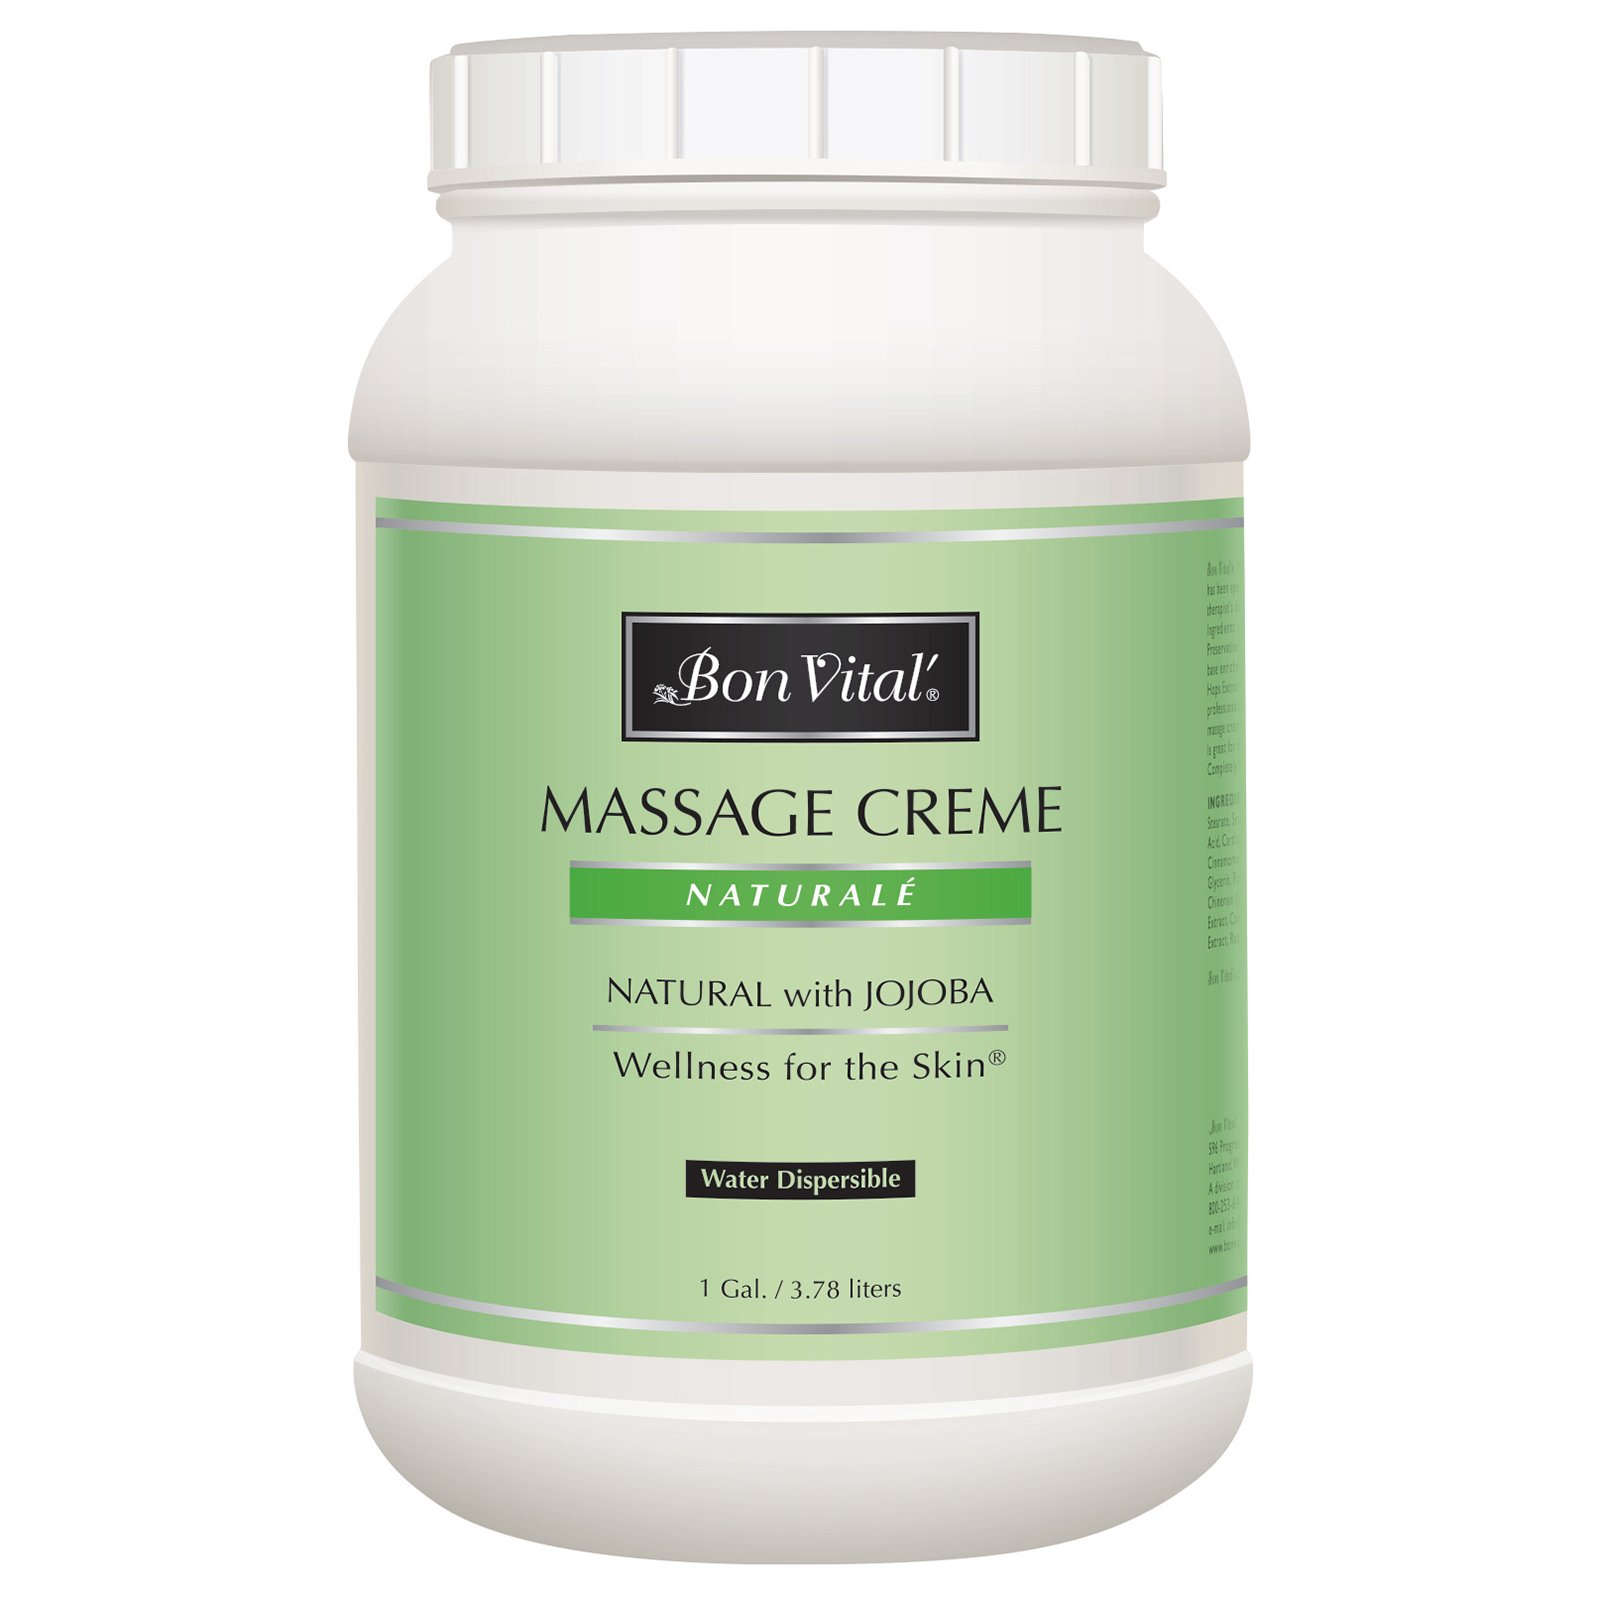 Bon Vital' Naturale Massage Crème, Professional Massage Therapy Cream with Natural Ingredients for an Earth-Friendly & Relaxing Massage, Full Body Daily Moisturizer for Smooth Skin, 1 Gallon Jar by Biofreeze (Image #1)